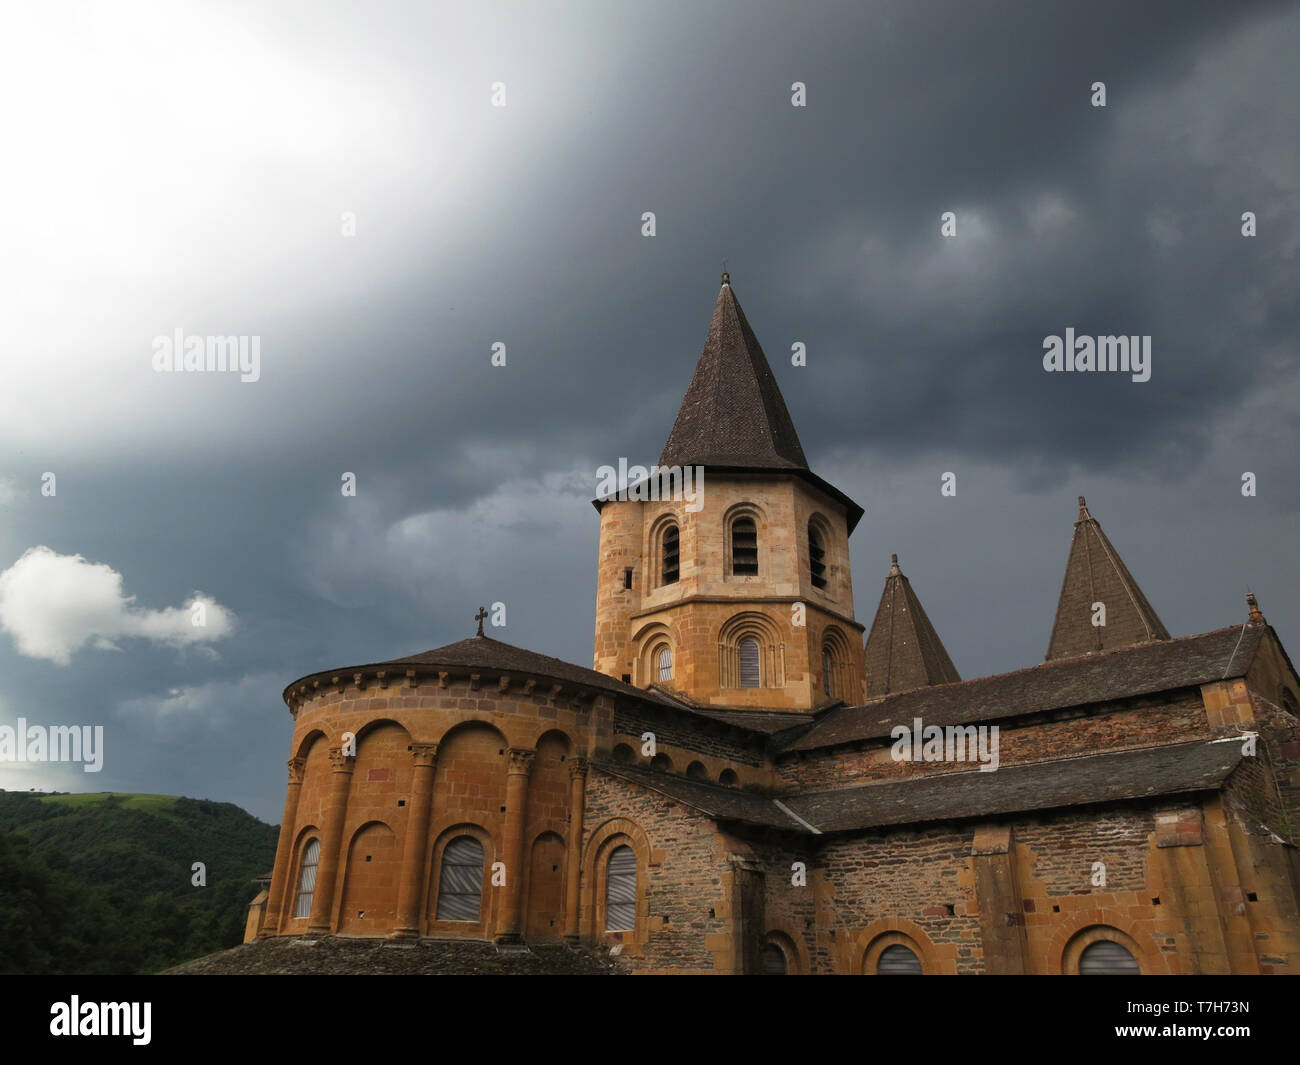 Conques, historic town along the Via Podiensis, also know as Le Puy Route, in southern France. Next to Abbey-Church of Saint-Foy.. - Stock Image